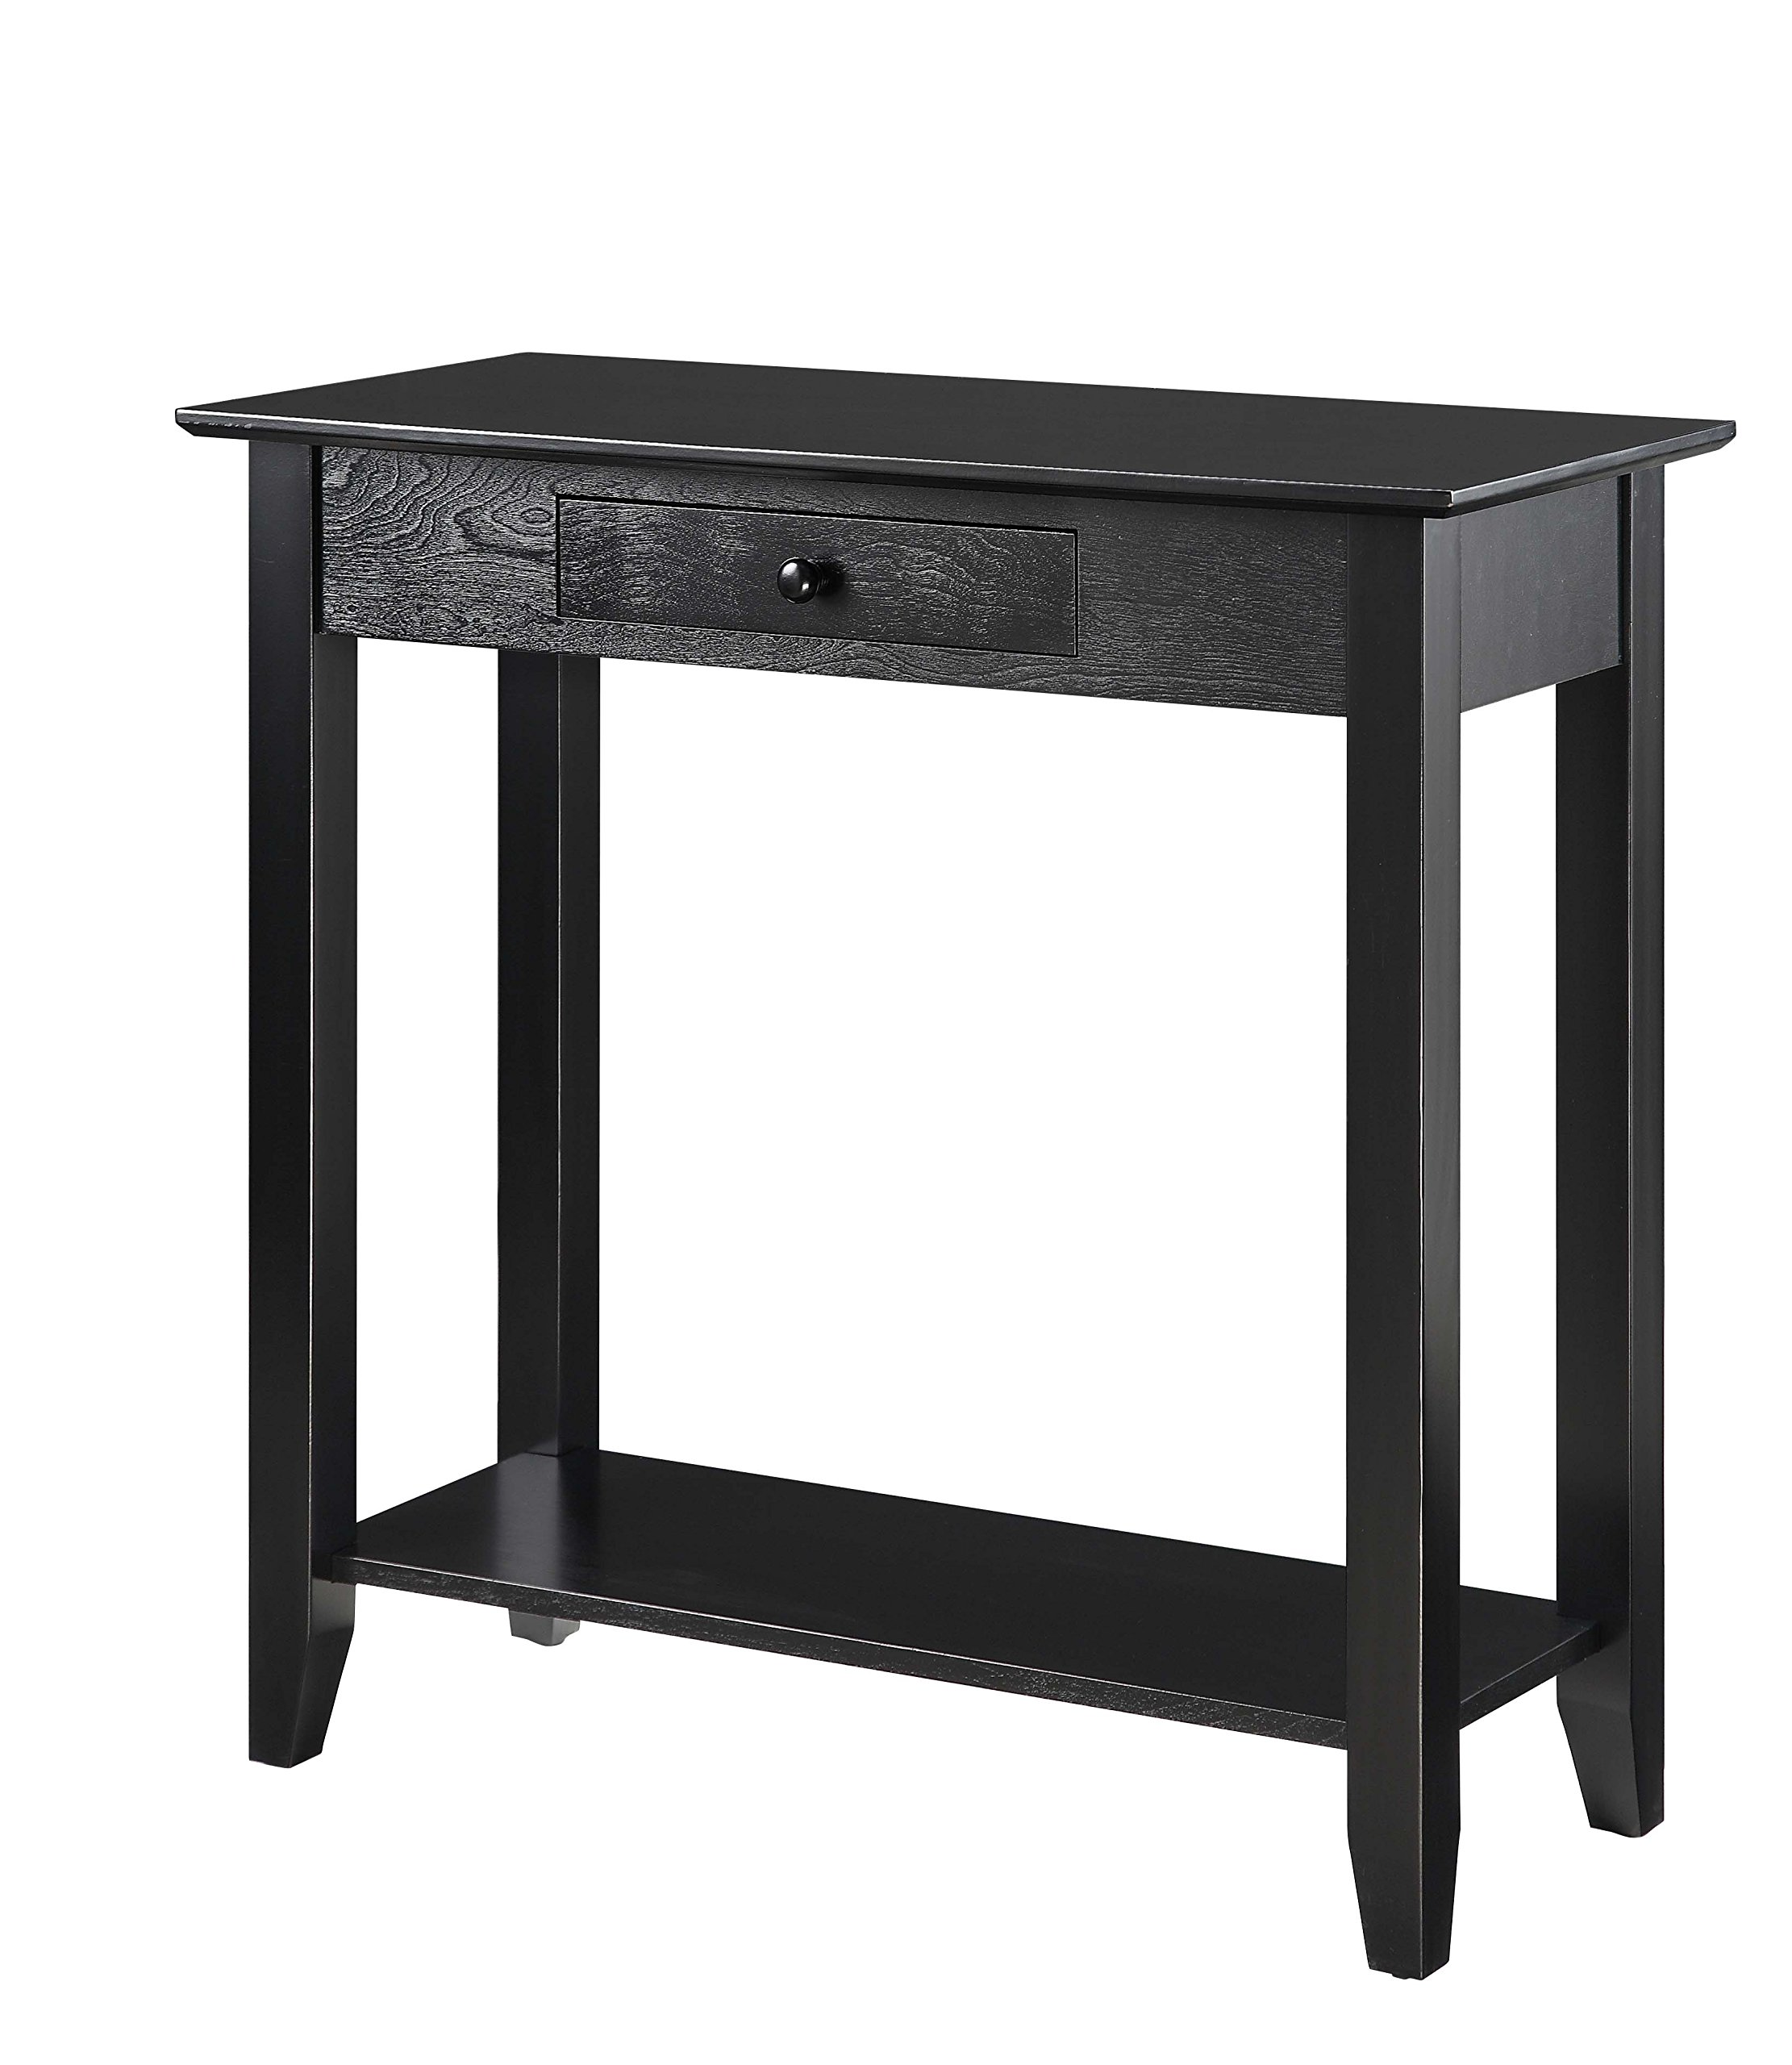 Furniture For Small Entryway: Entryway Hall Table W/ Drawer & Shelf Small Foyer